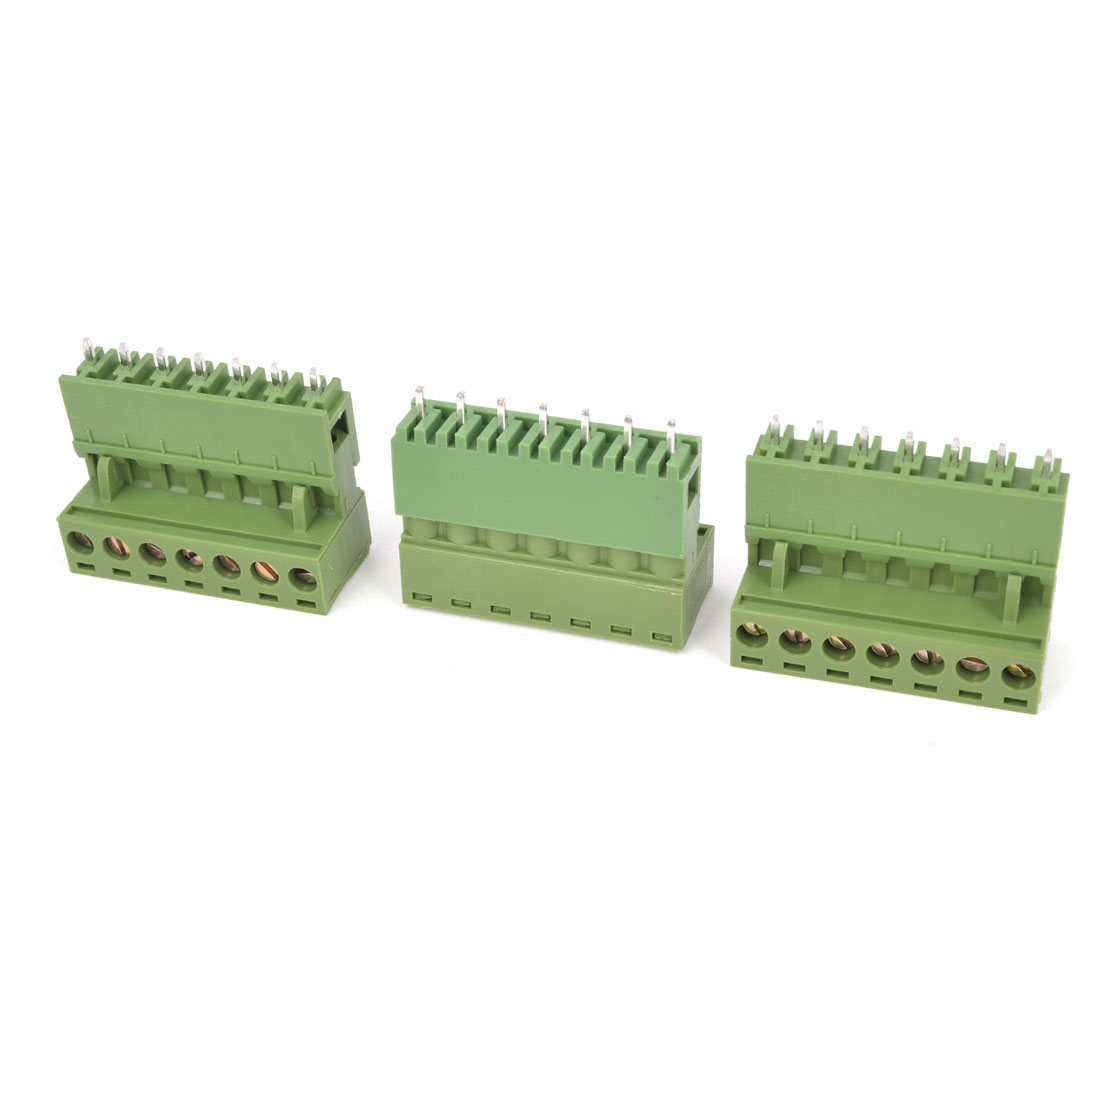 3Pcs Army Green 300V 10A 5.08mm Pitch 7P Way Printed Circuit Board PCB Screw Terminal Barrier Block Connector